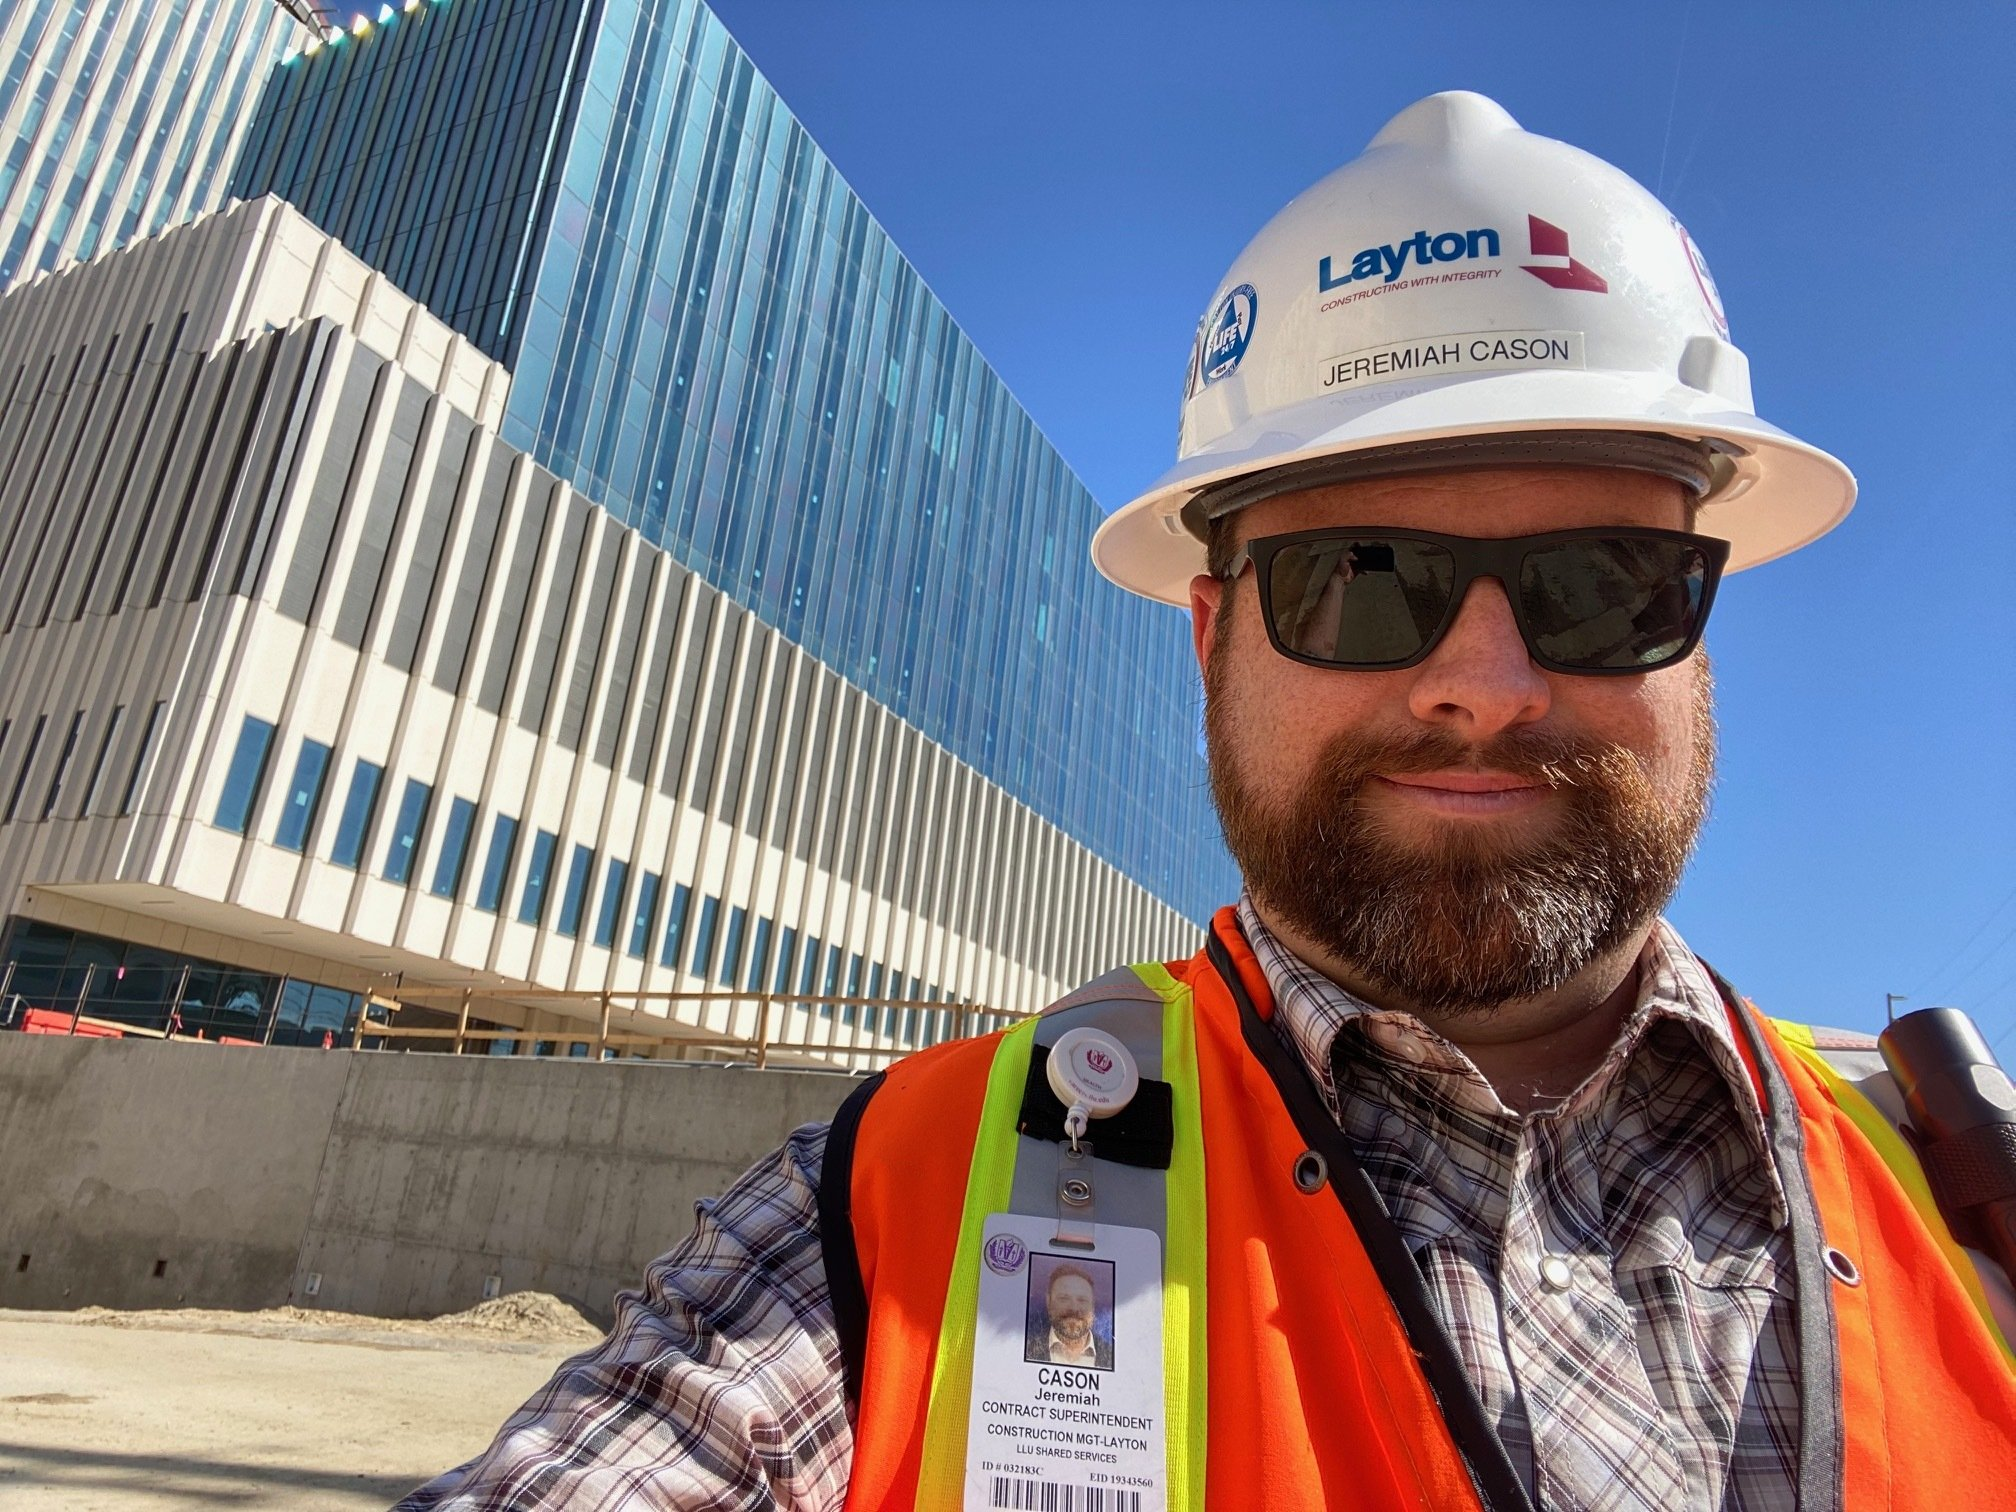 Jeremiah takes a selfie at a construction site.